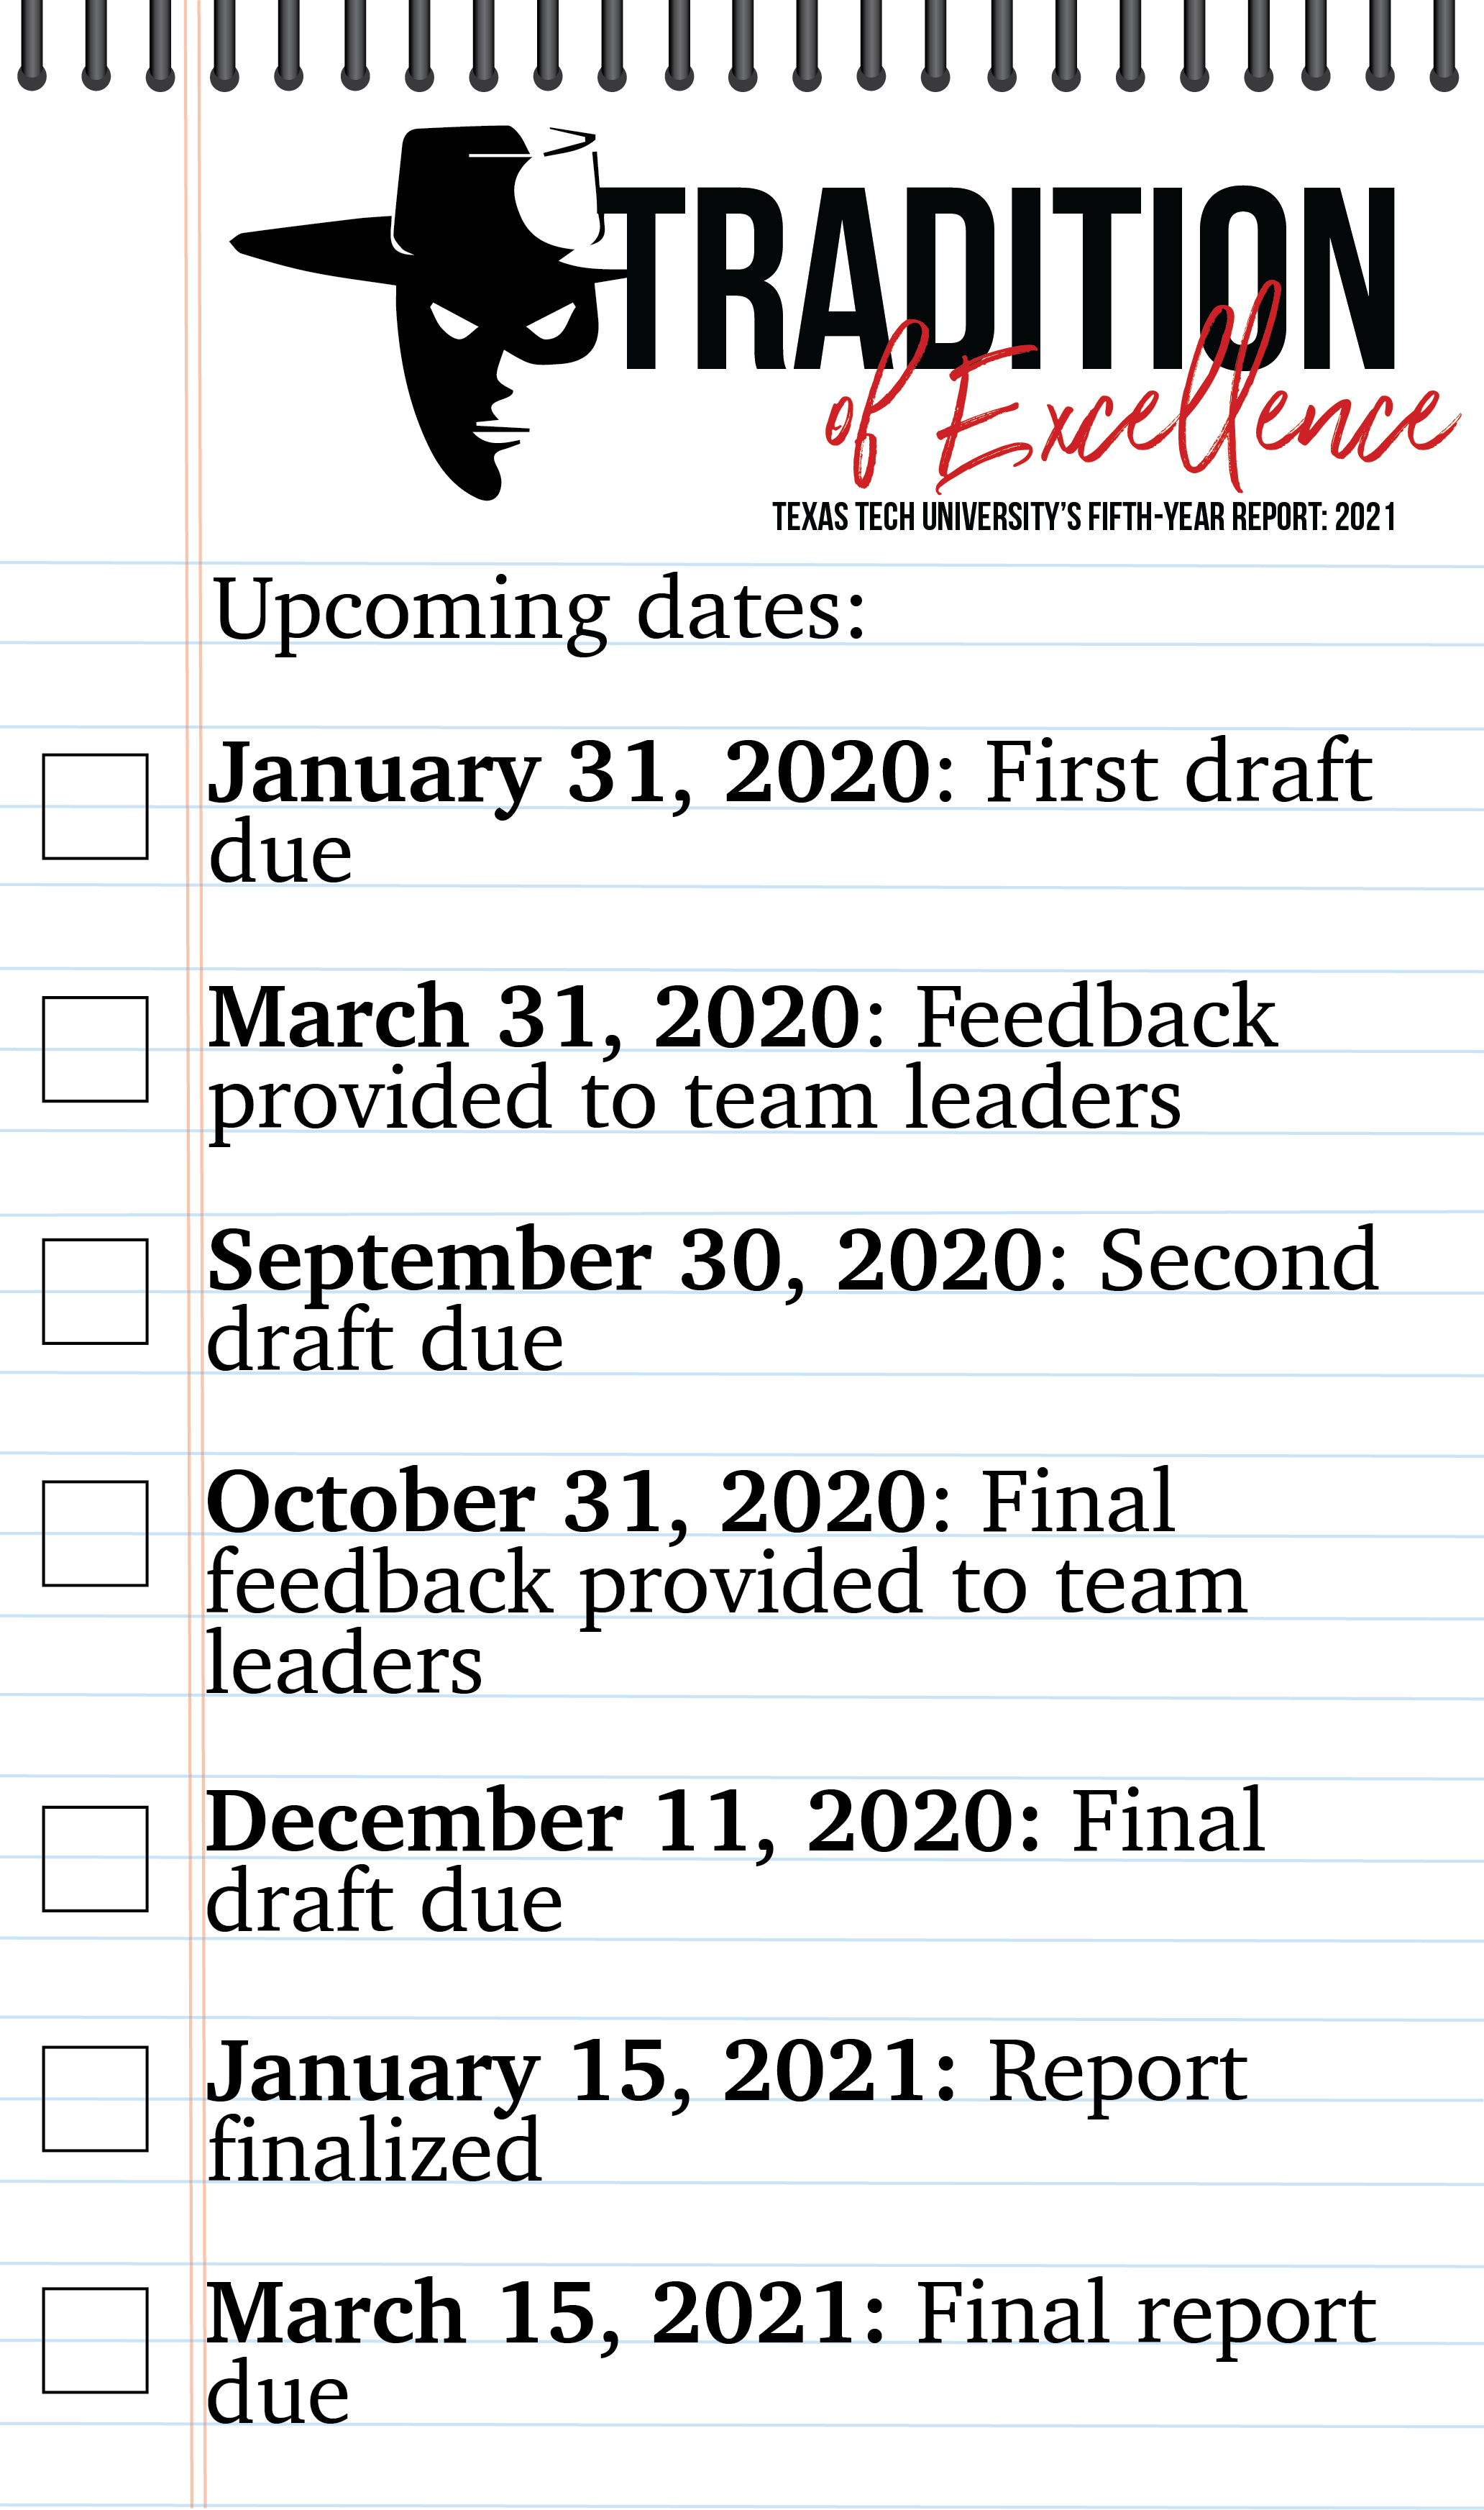 Texas Tech Fifth Year Report: 2021 | Office Of Planning And Intended For Texas Tech University Holiday Schedule 2021